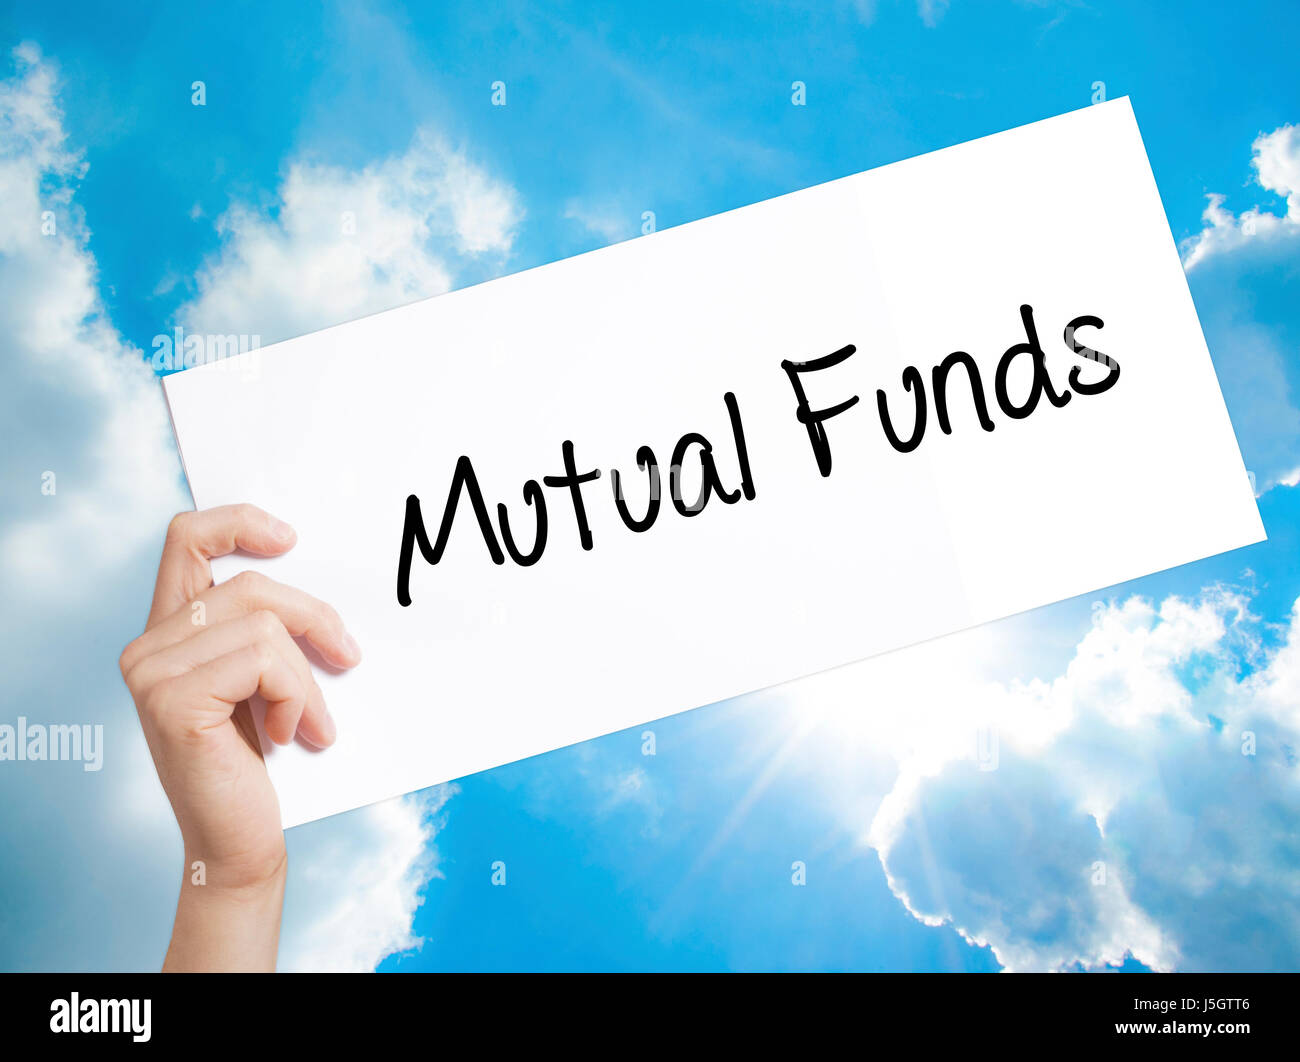 Mutual Funds  Sign on white paper. Man Hand Holding Paper with text. Isolated on sky background.   Business concept. - Stock Image